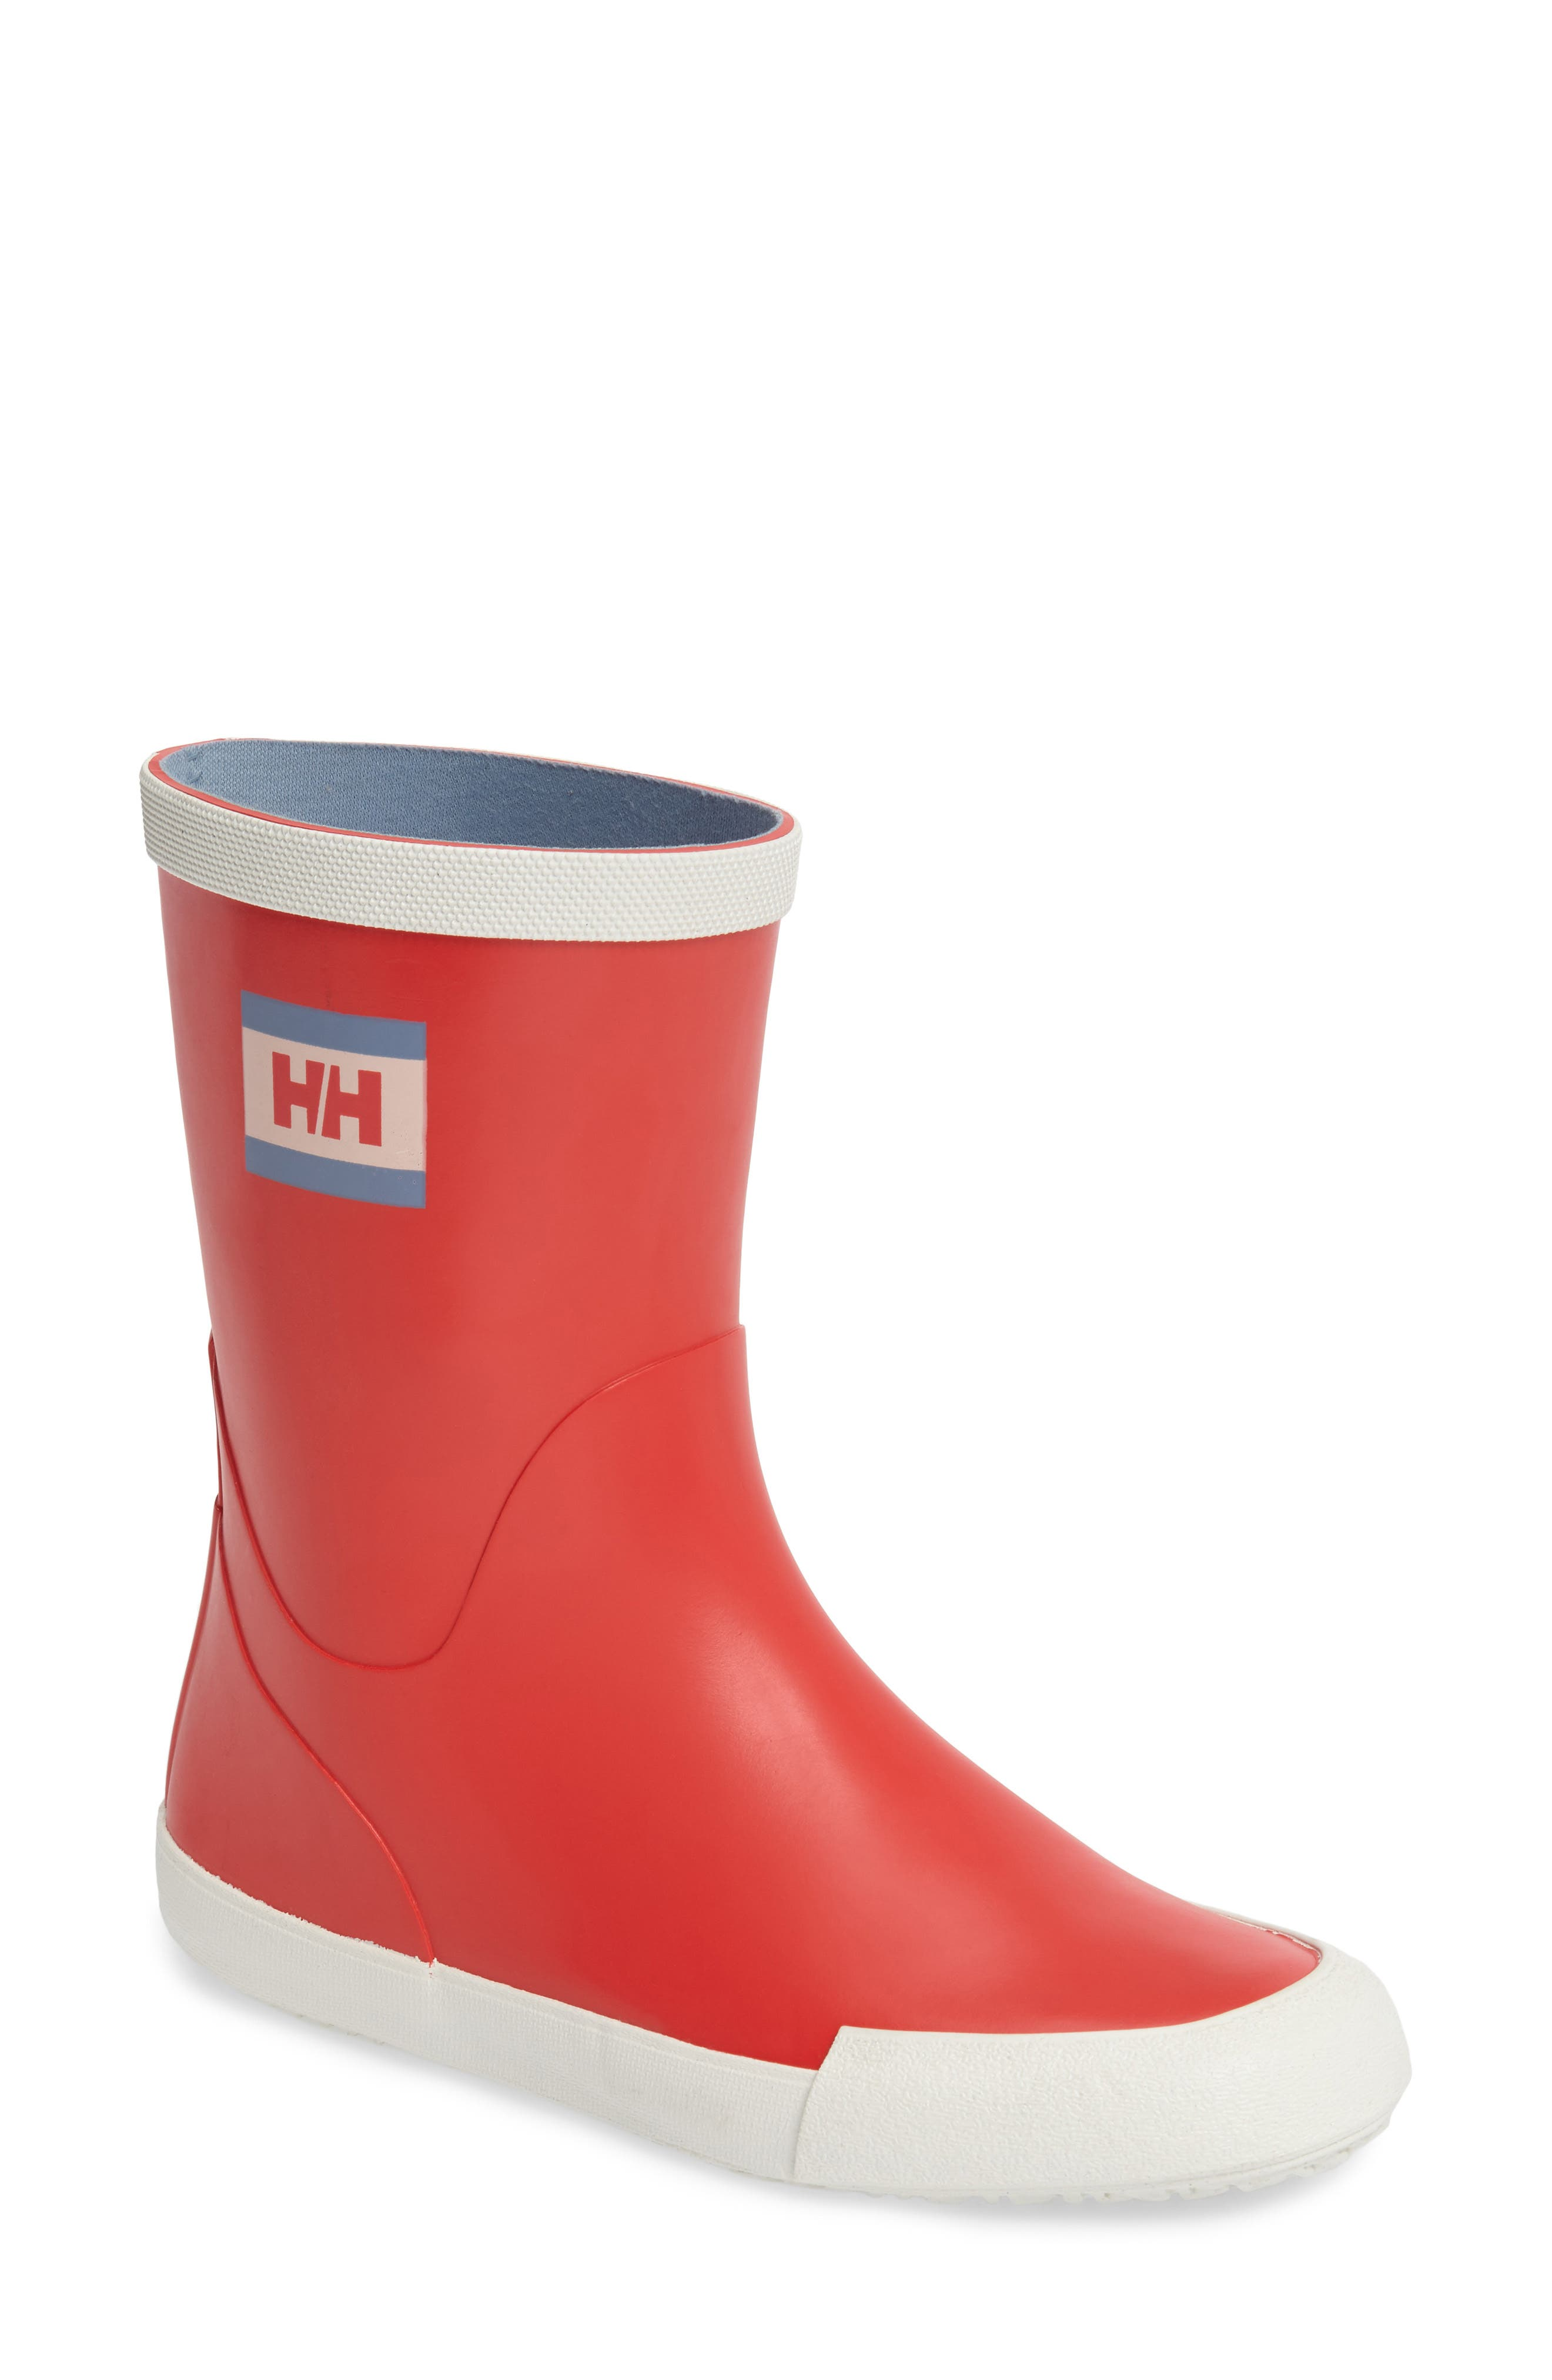 Alternate Image 1 Selected - Helly Hansen Nordvick Rain Boot (Women)